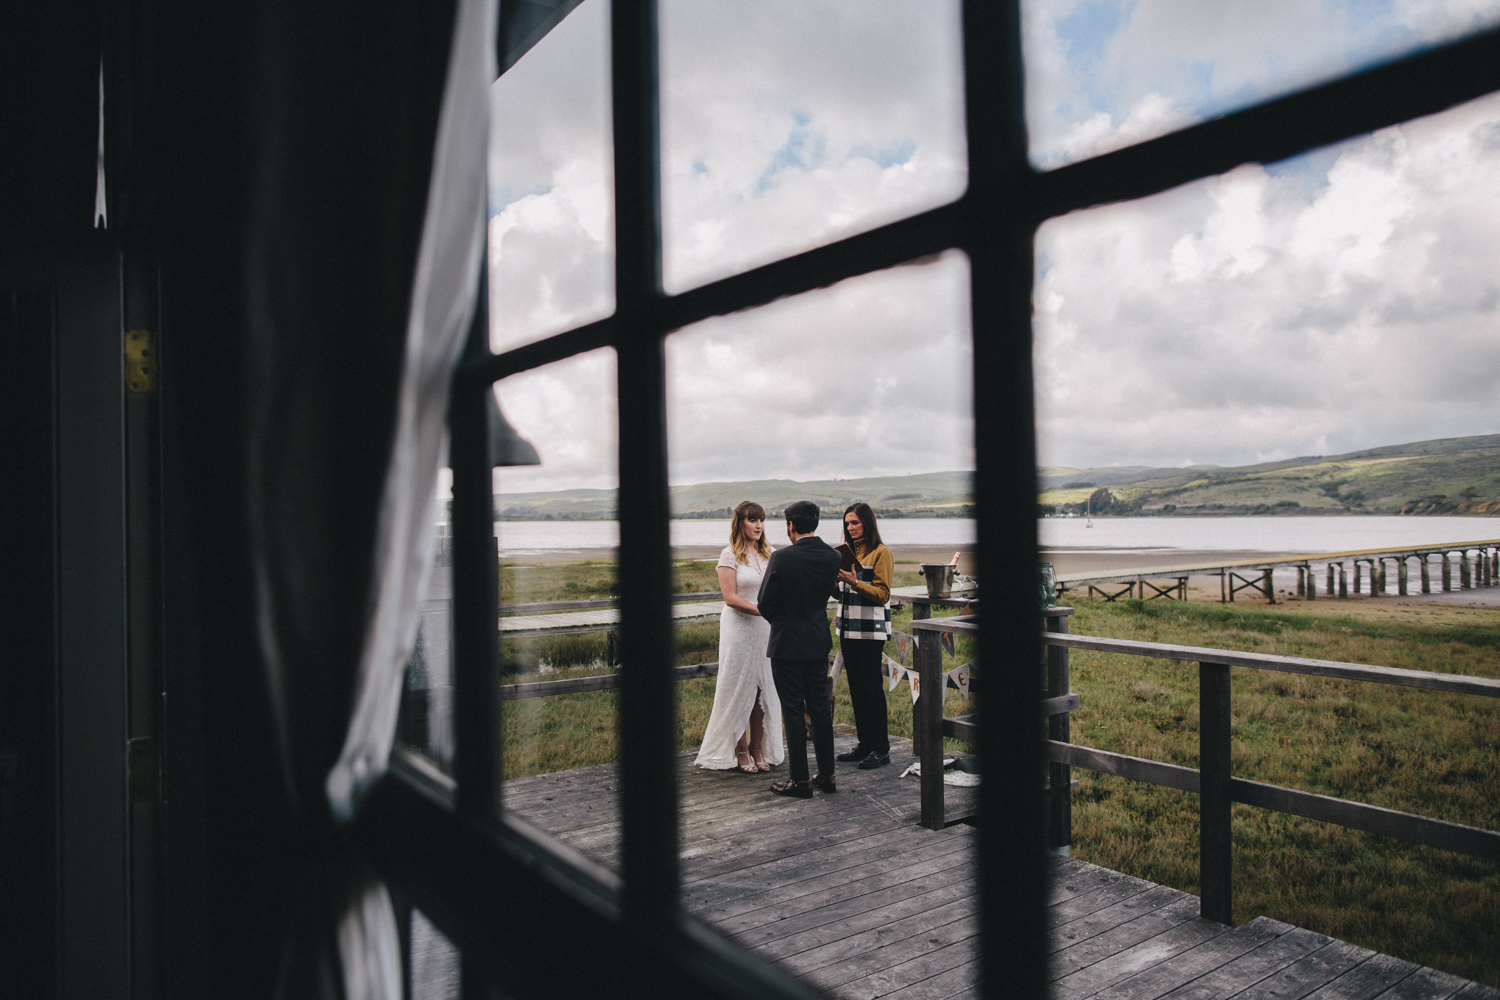 Point Reyes Inverness Wedding Photographer Rachelle Derouin-43.jpg